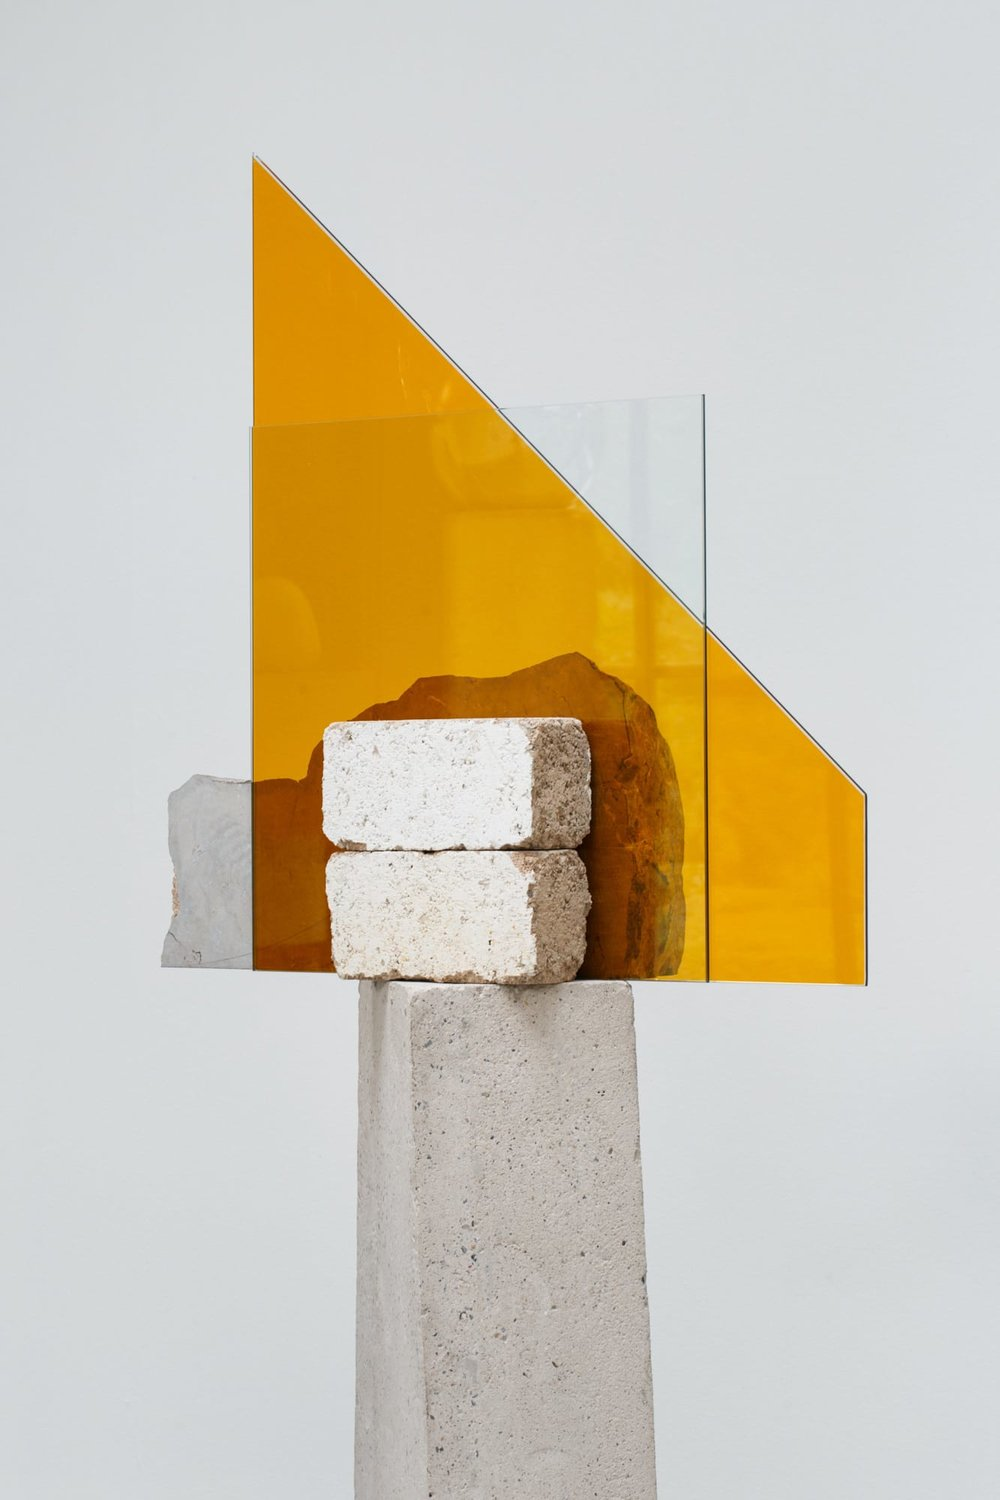 Not-All-Those-Who-Wander-Are-Lost-Vertical-Configurations-by-Jose-Davila-Yellowtrace-07.jpg